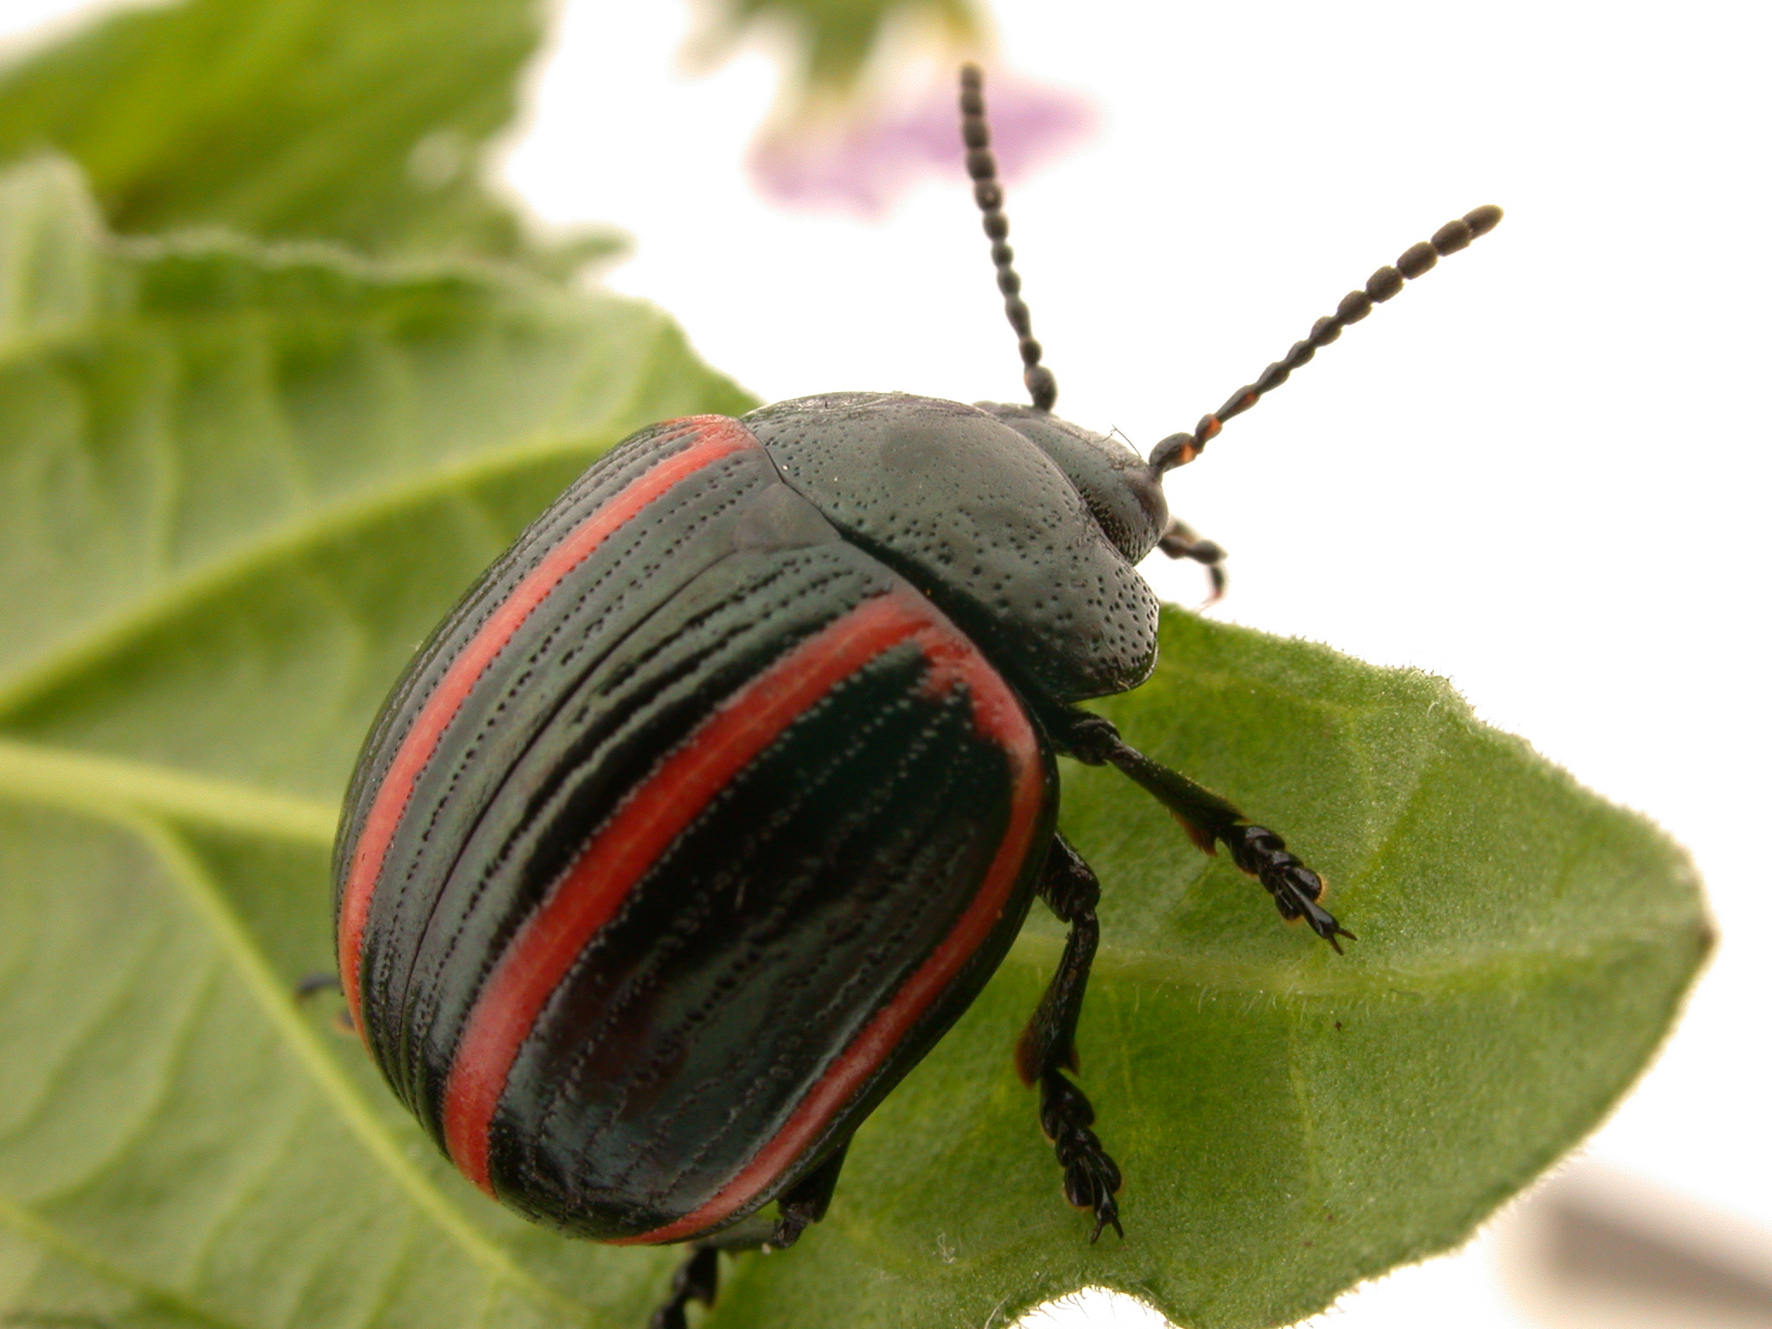 Round black beetle with red markings crawling on green leaf